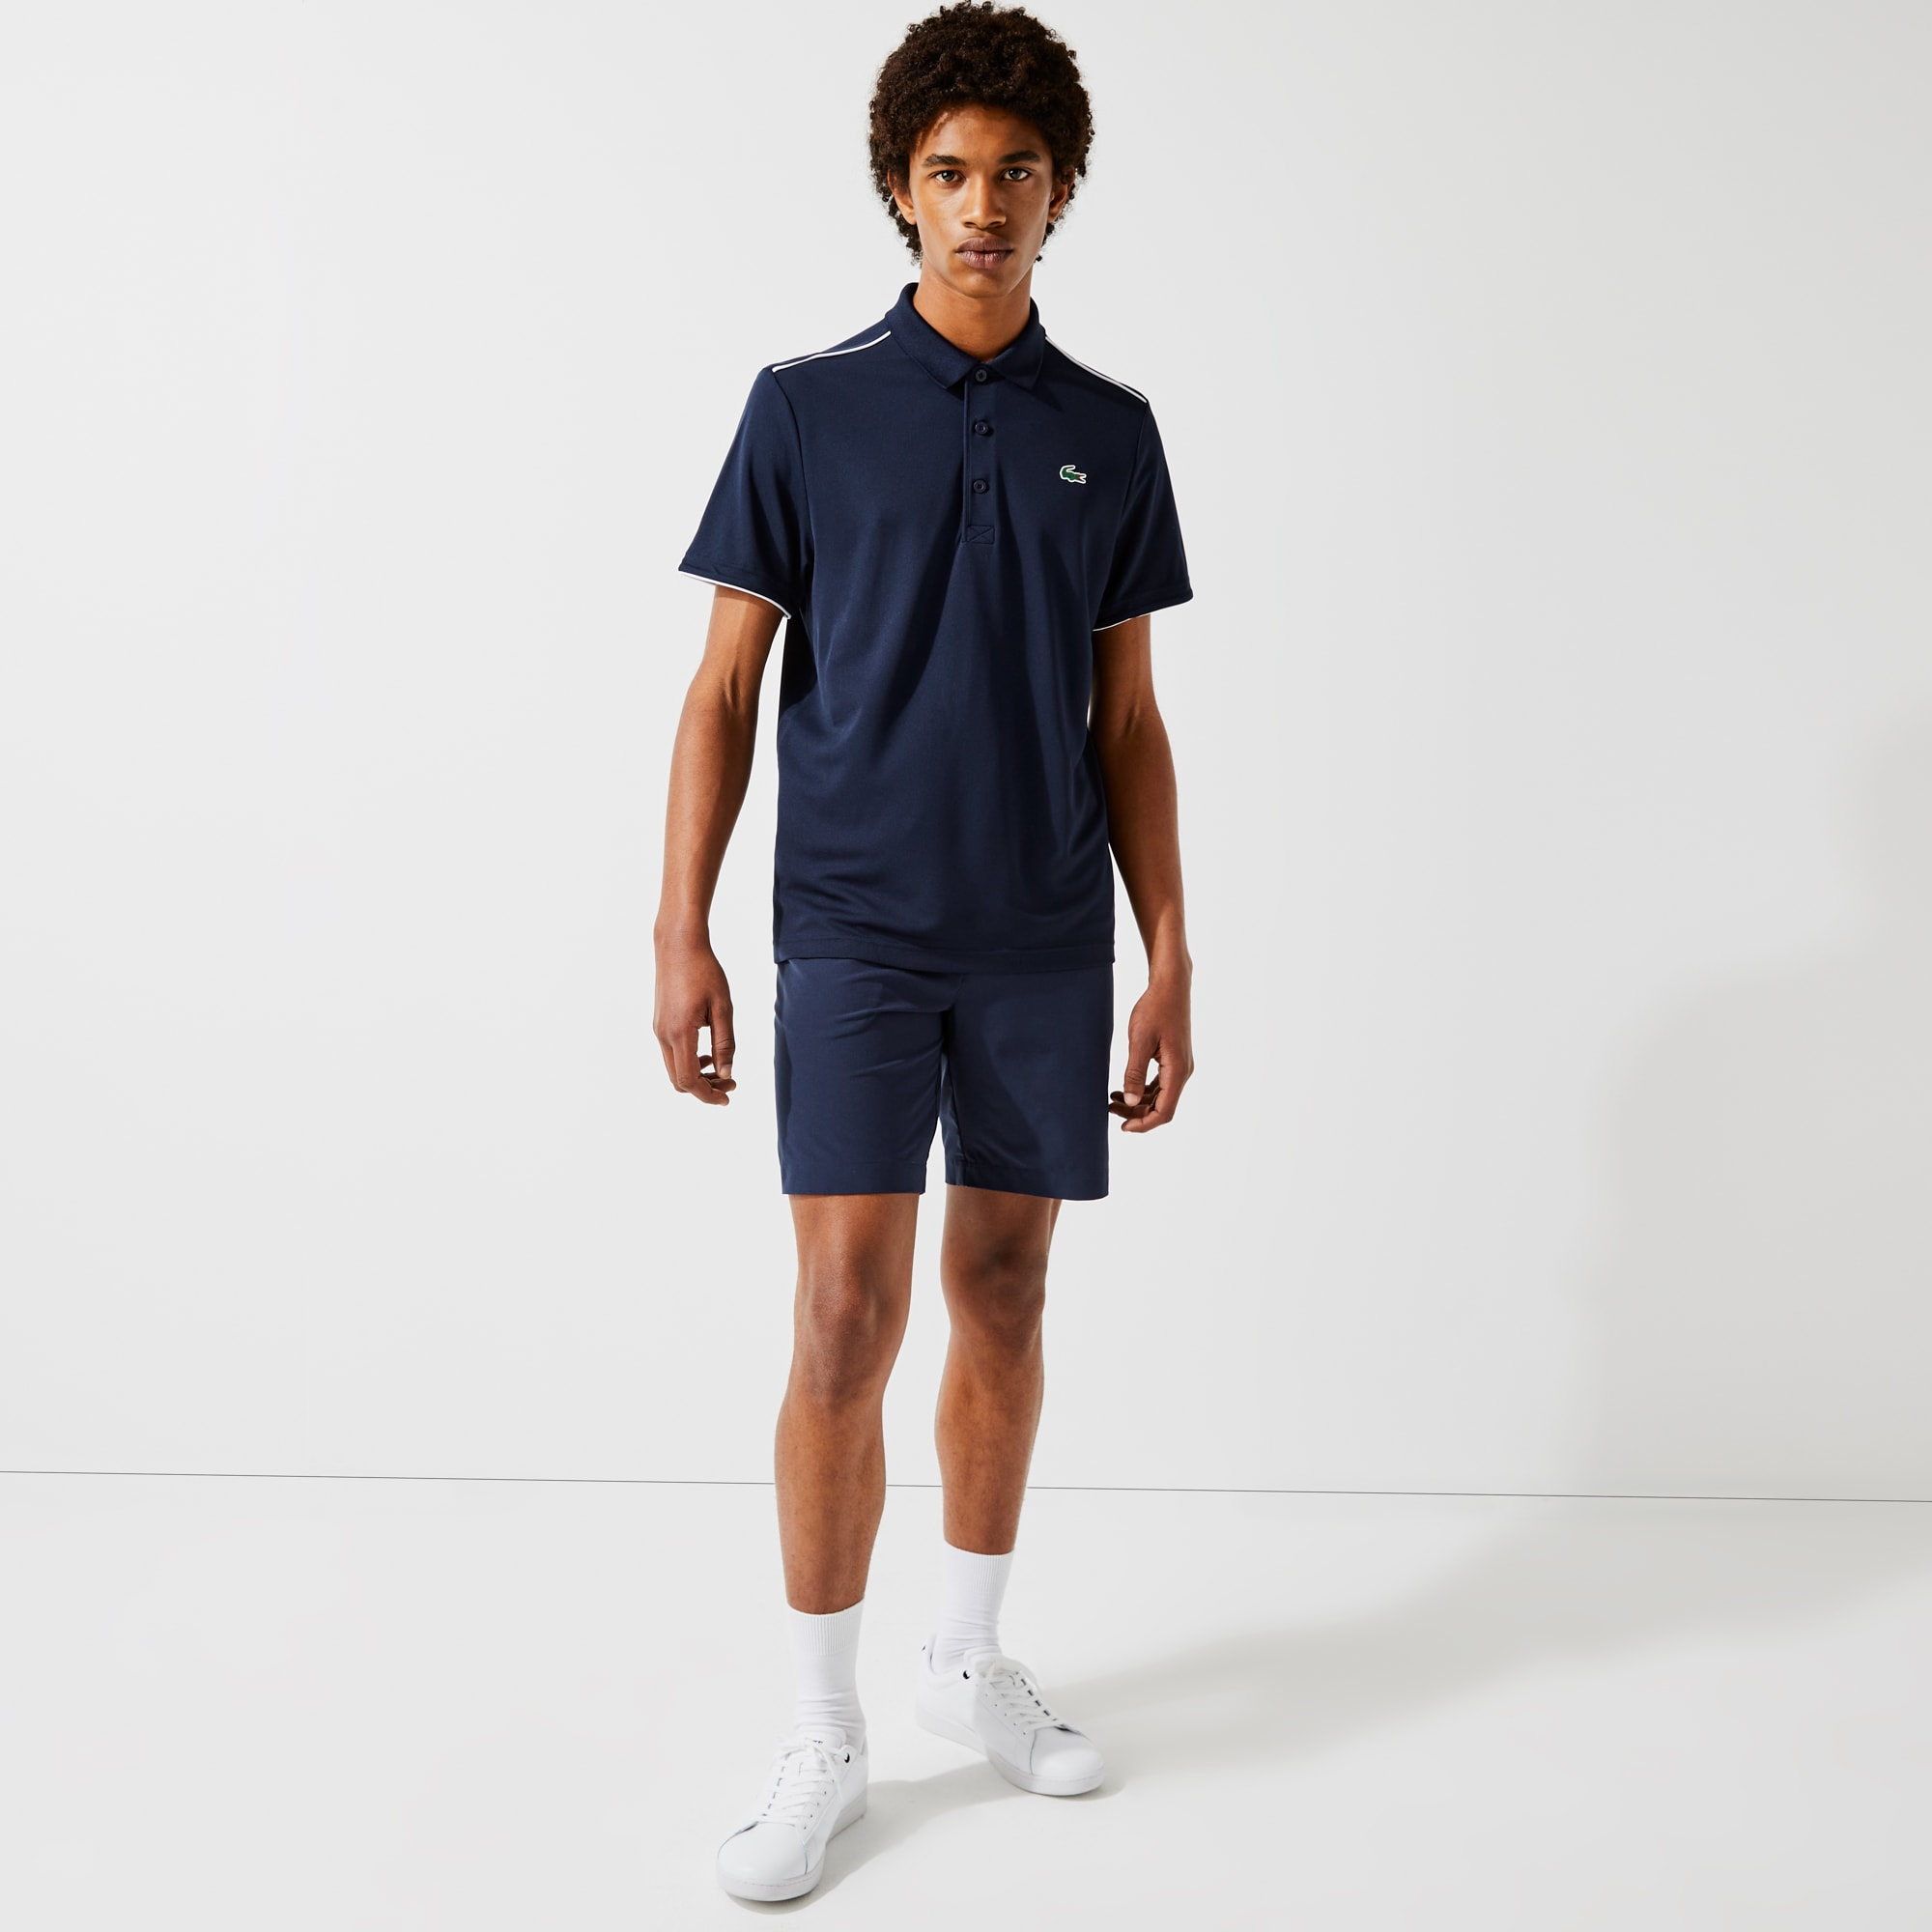 Lacoste Mens SPORT Contrast Piping Breathable Pique Polo Shirt